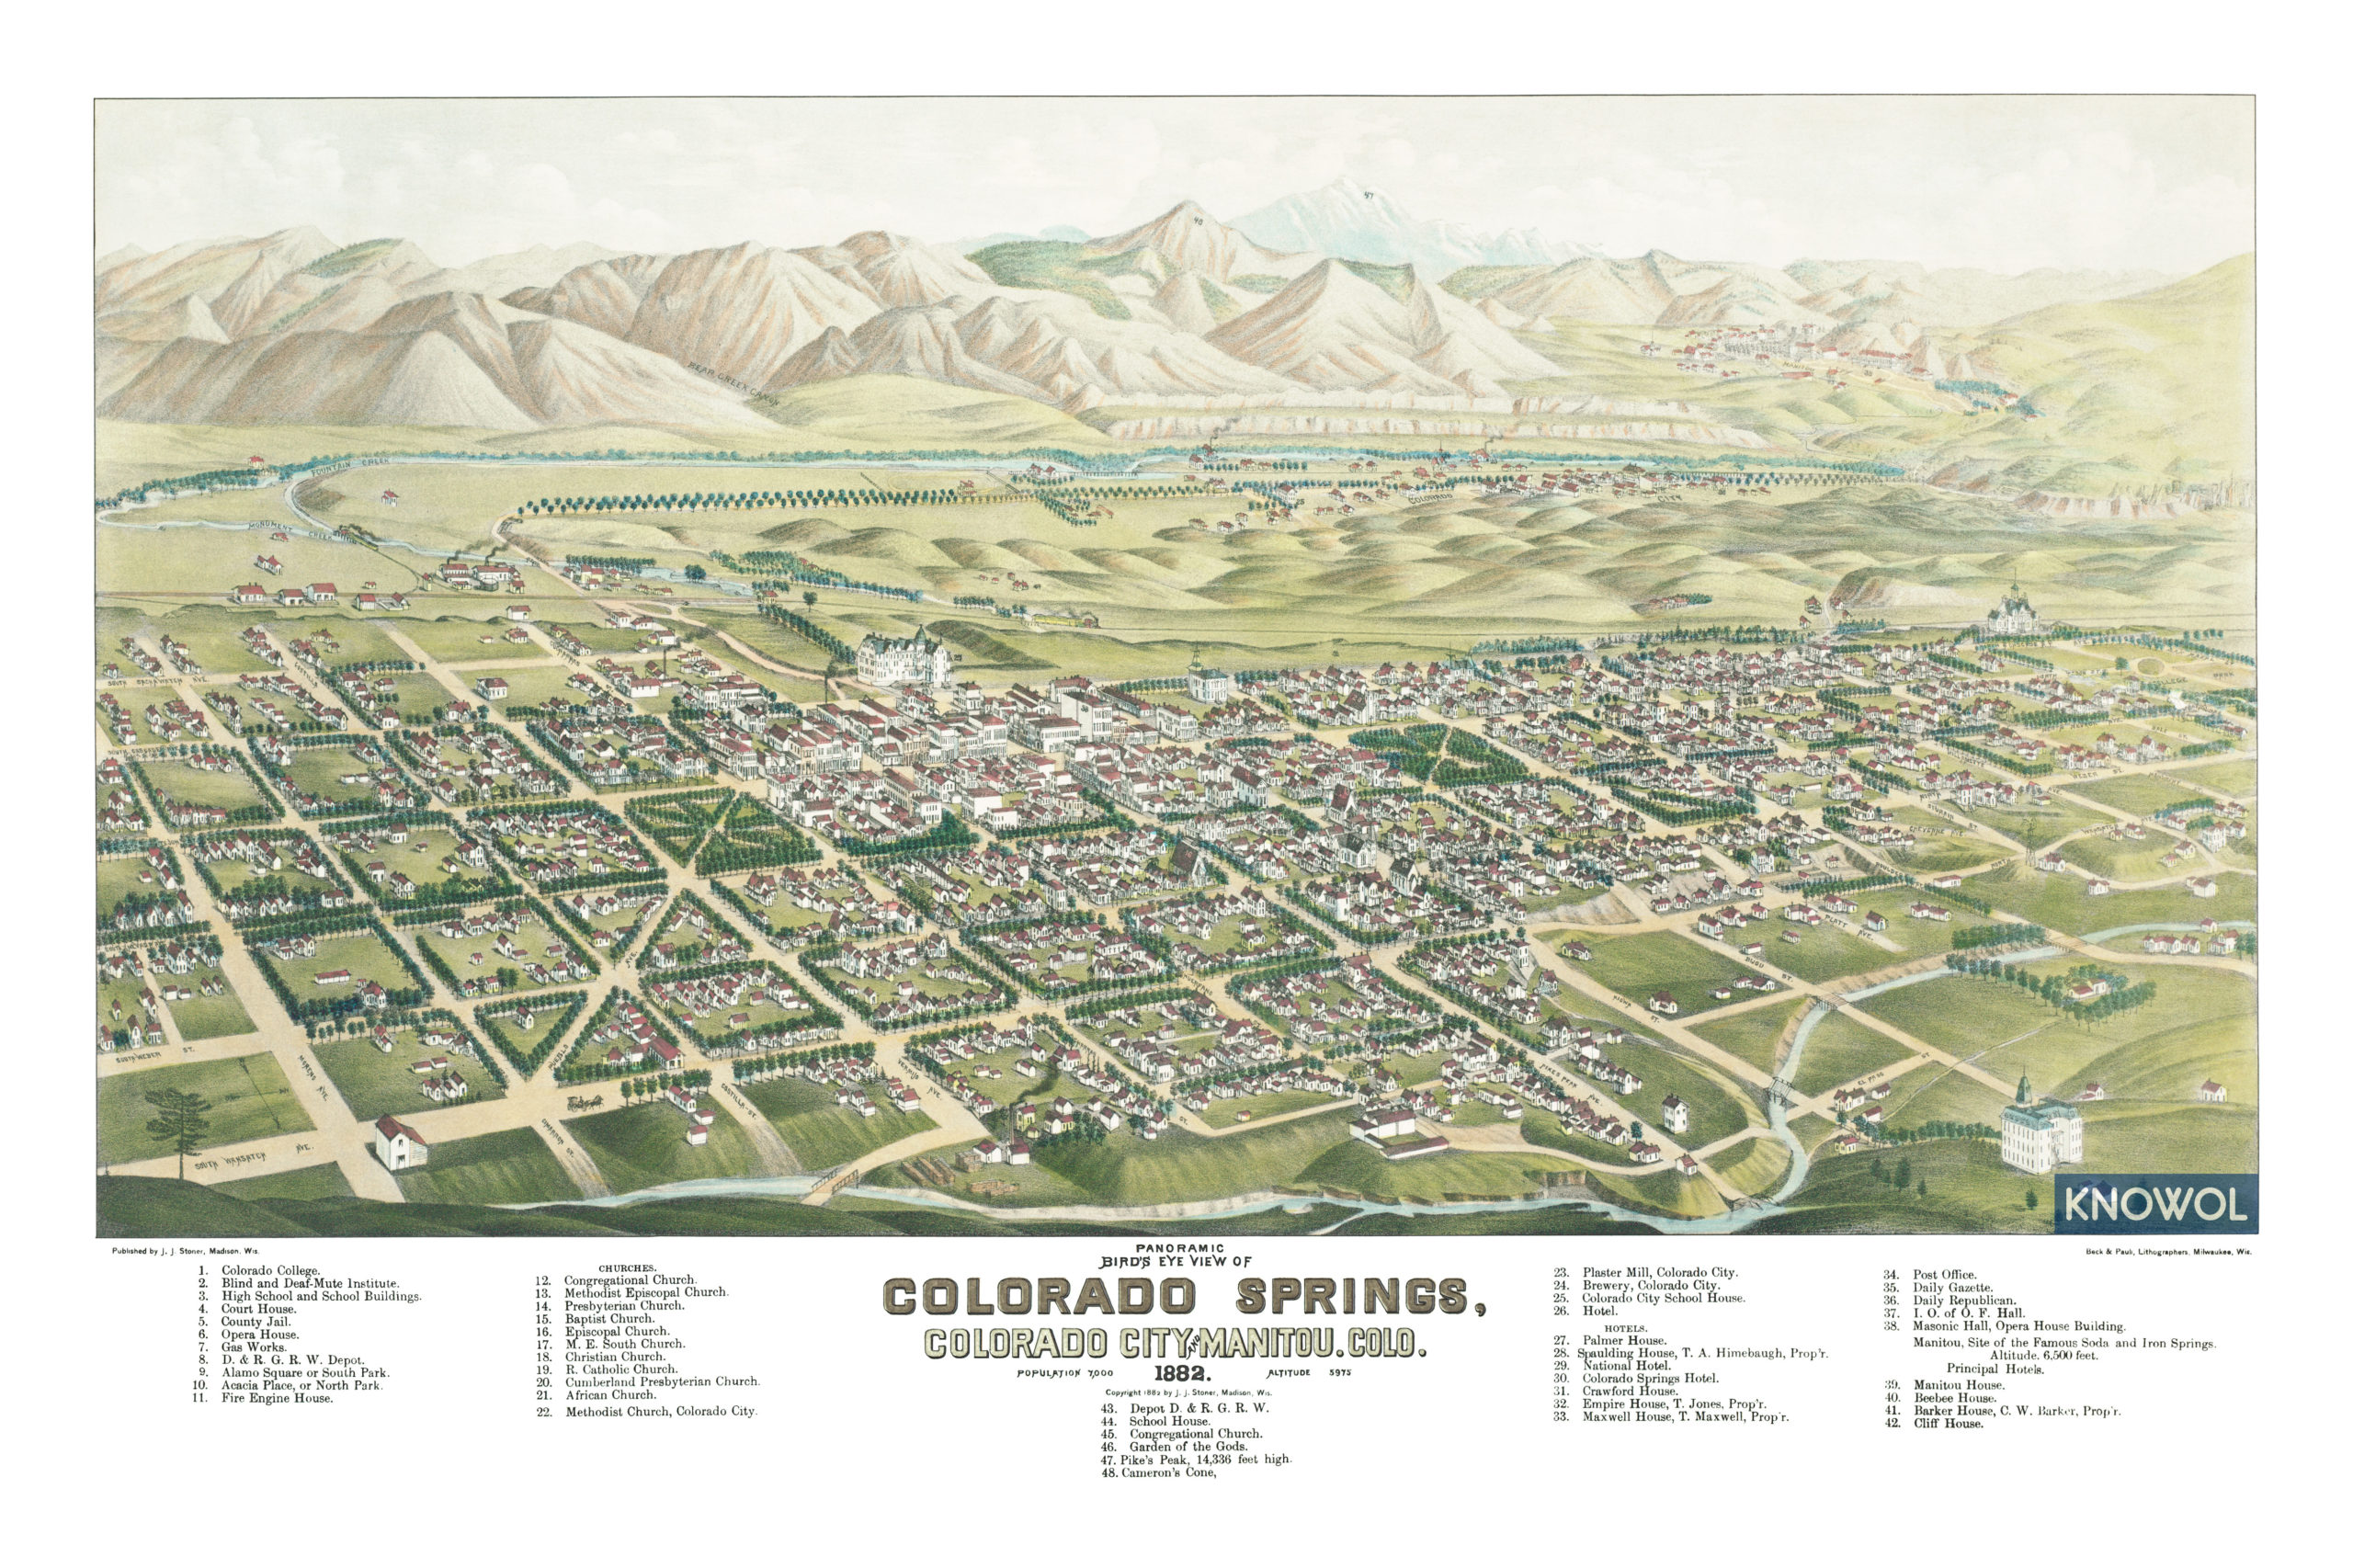 Beautifully Restored Map Of Colorado Springs Co In 1882 Knowol